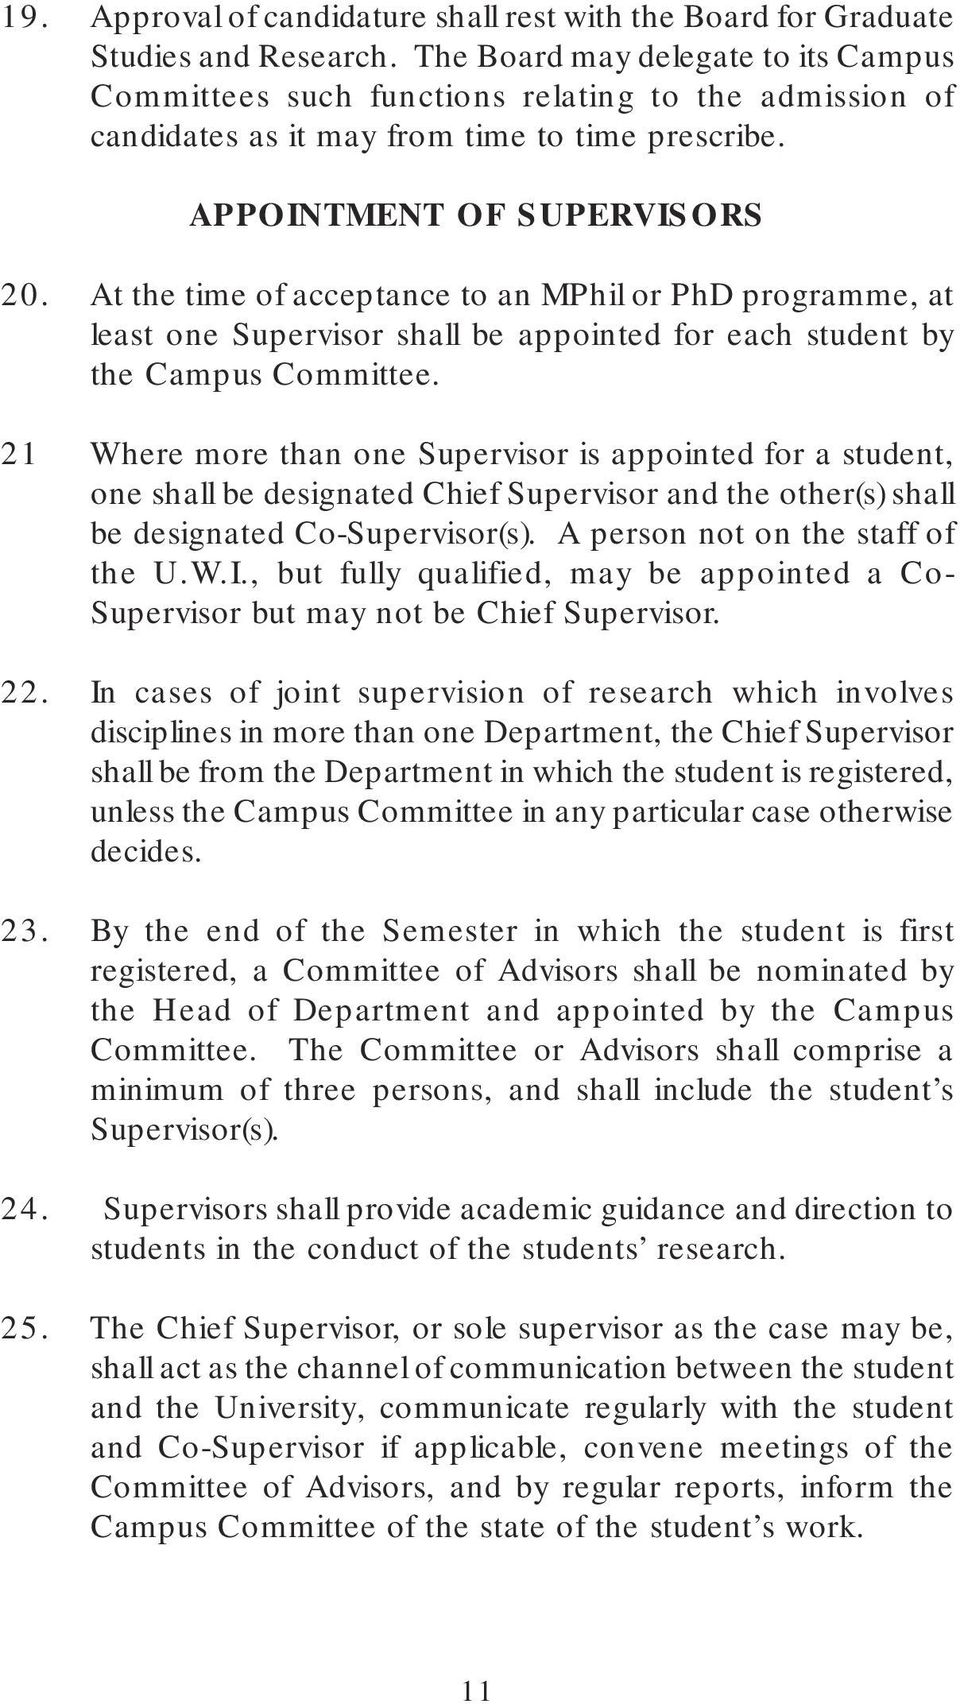 At the time of acceptance to an MPhil or PhD programme, at least one Supervisor shall be appointed for each student by the Campus Committee.